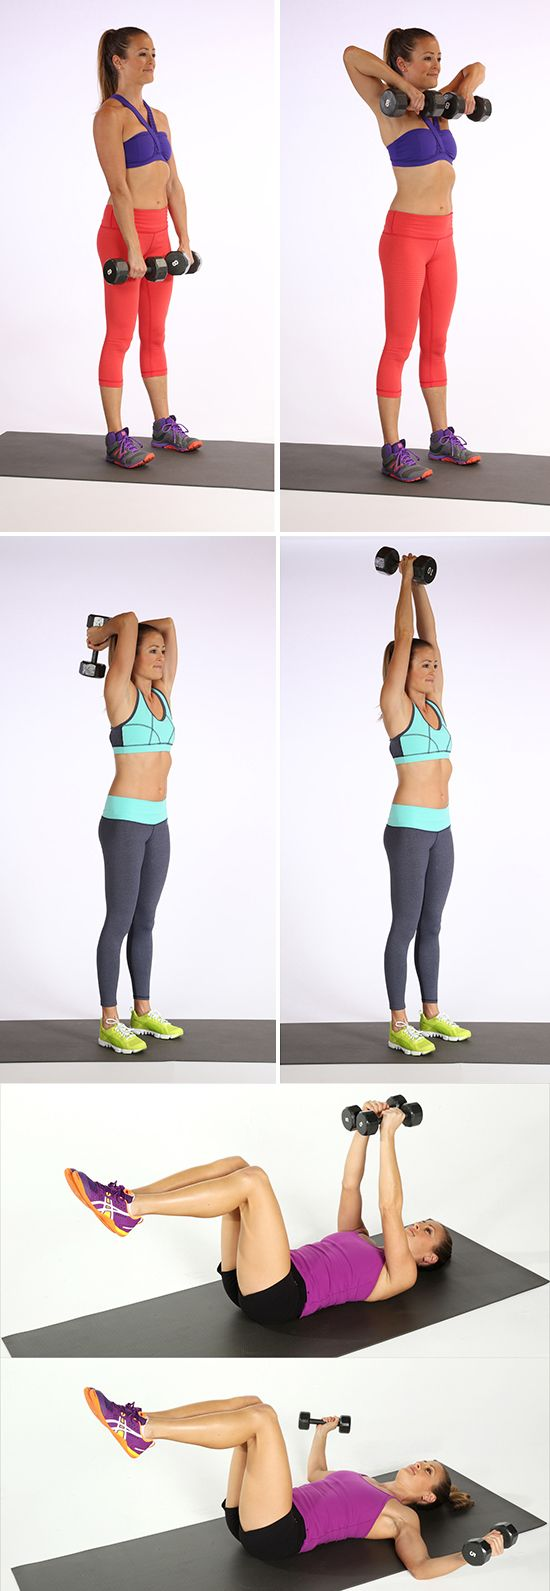 Arm exercises with weights for women pictures